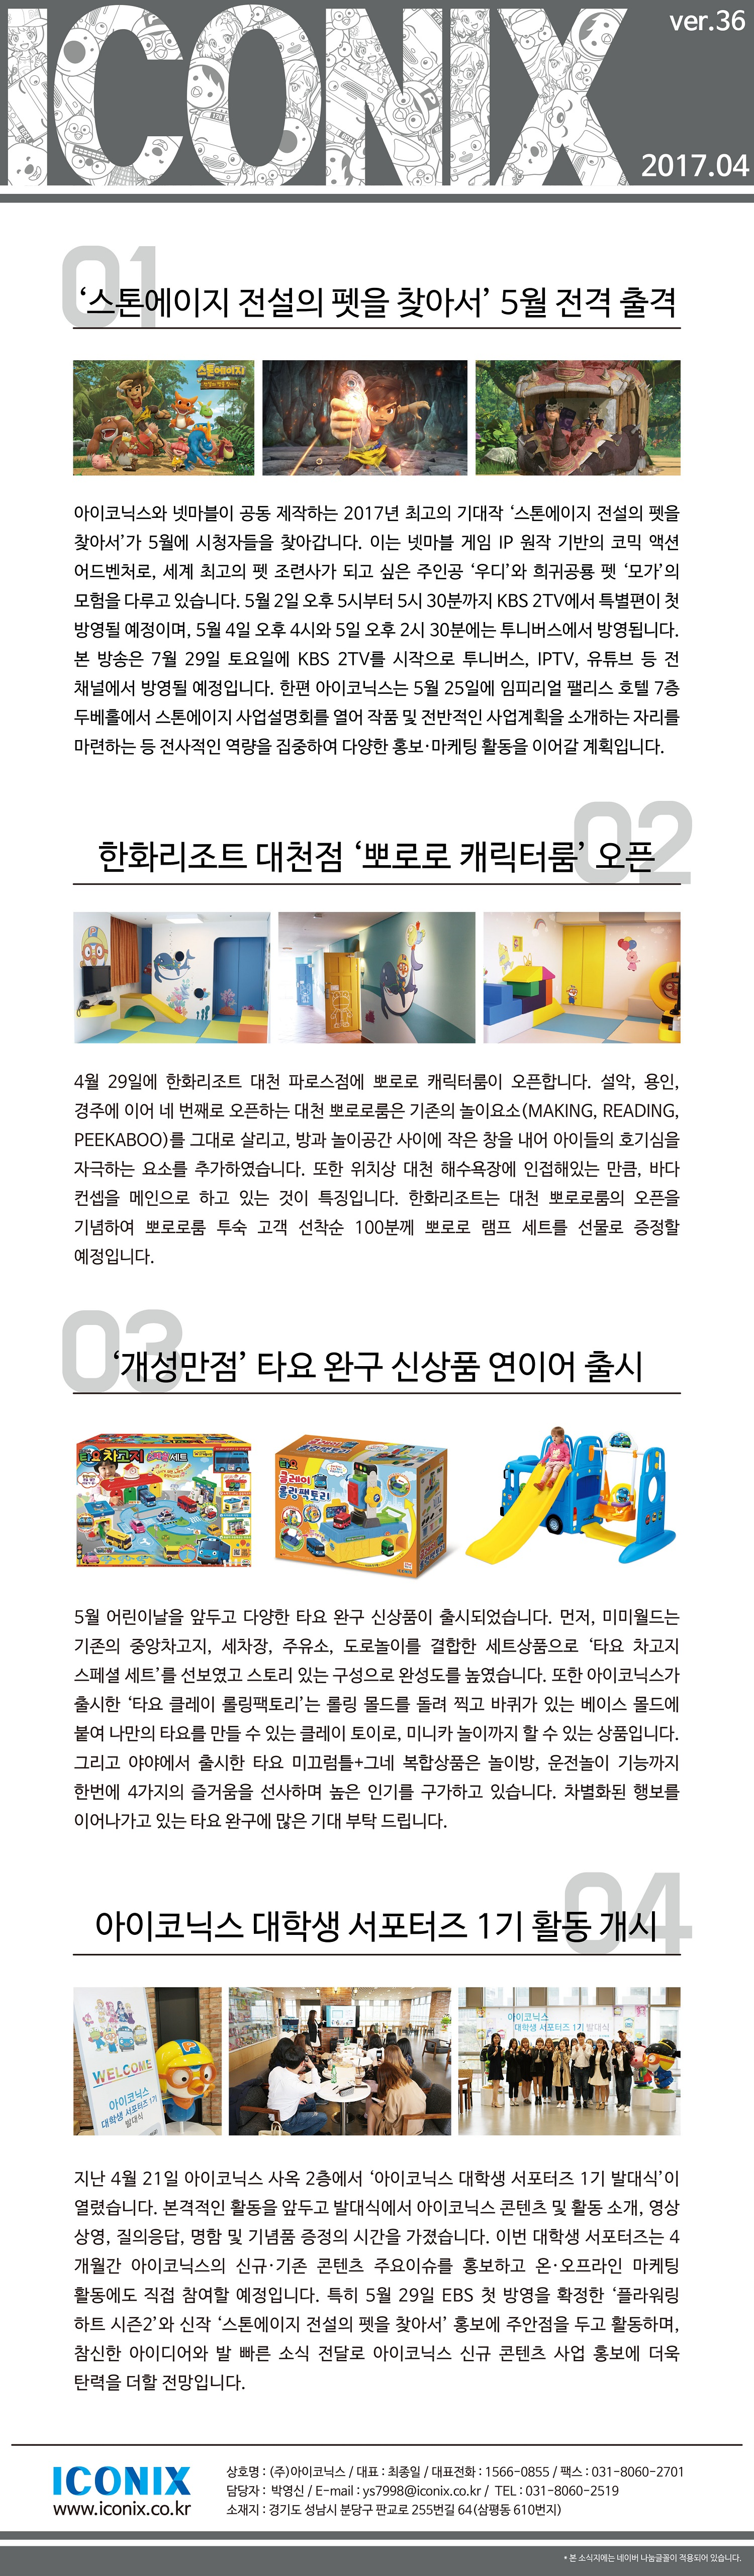 ICONIX_News Letter_1704_저.jpg